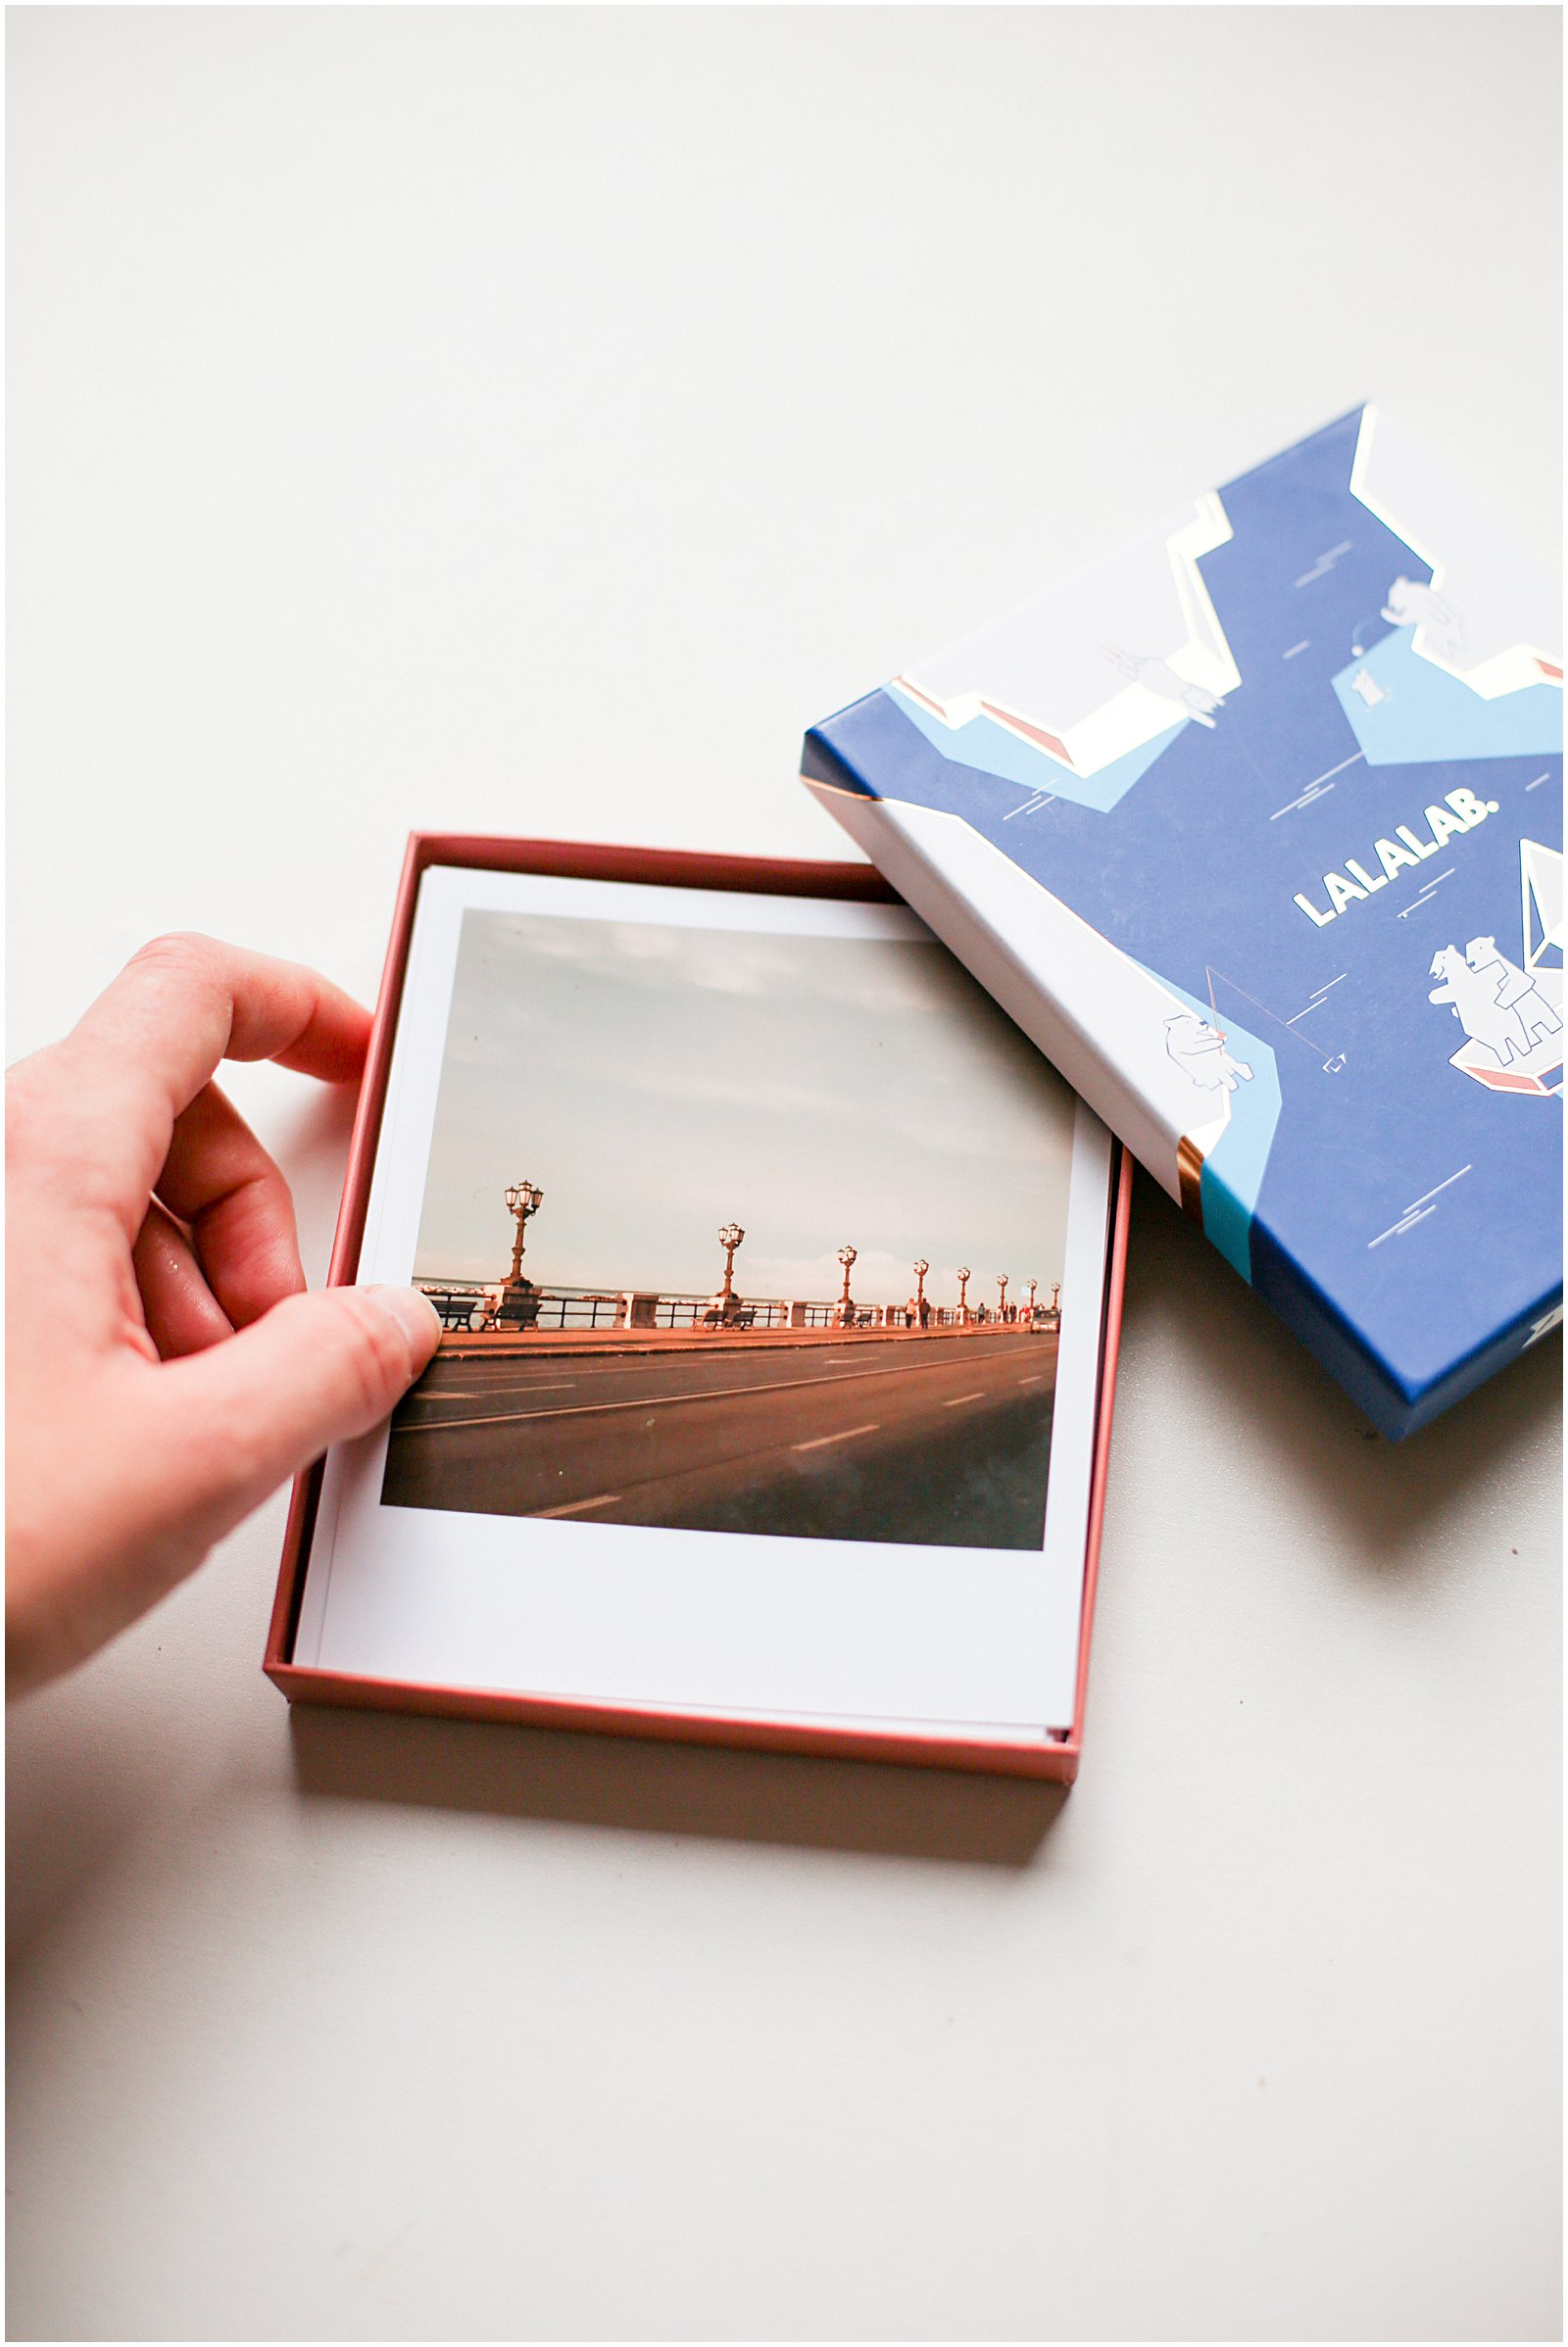 Helena Woods travel photos from LALALAB cute lalabox with printed polaroid photos